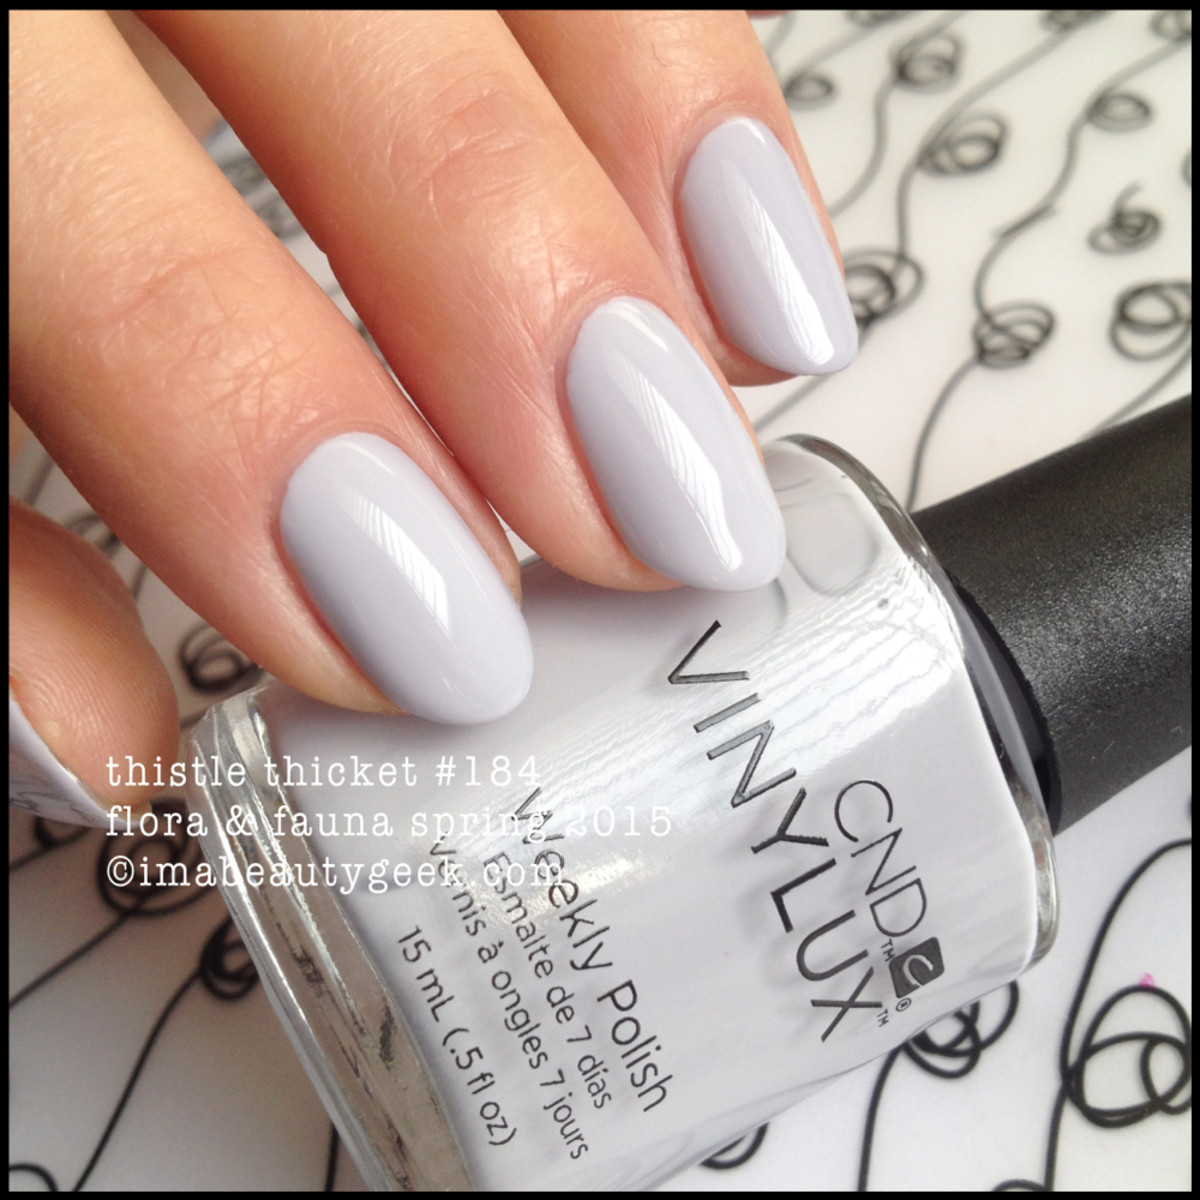 CND Vinylux Thistle Thicket 184 Flora Fauna Spring 2015